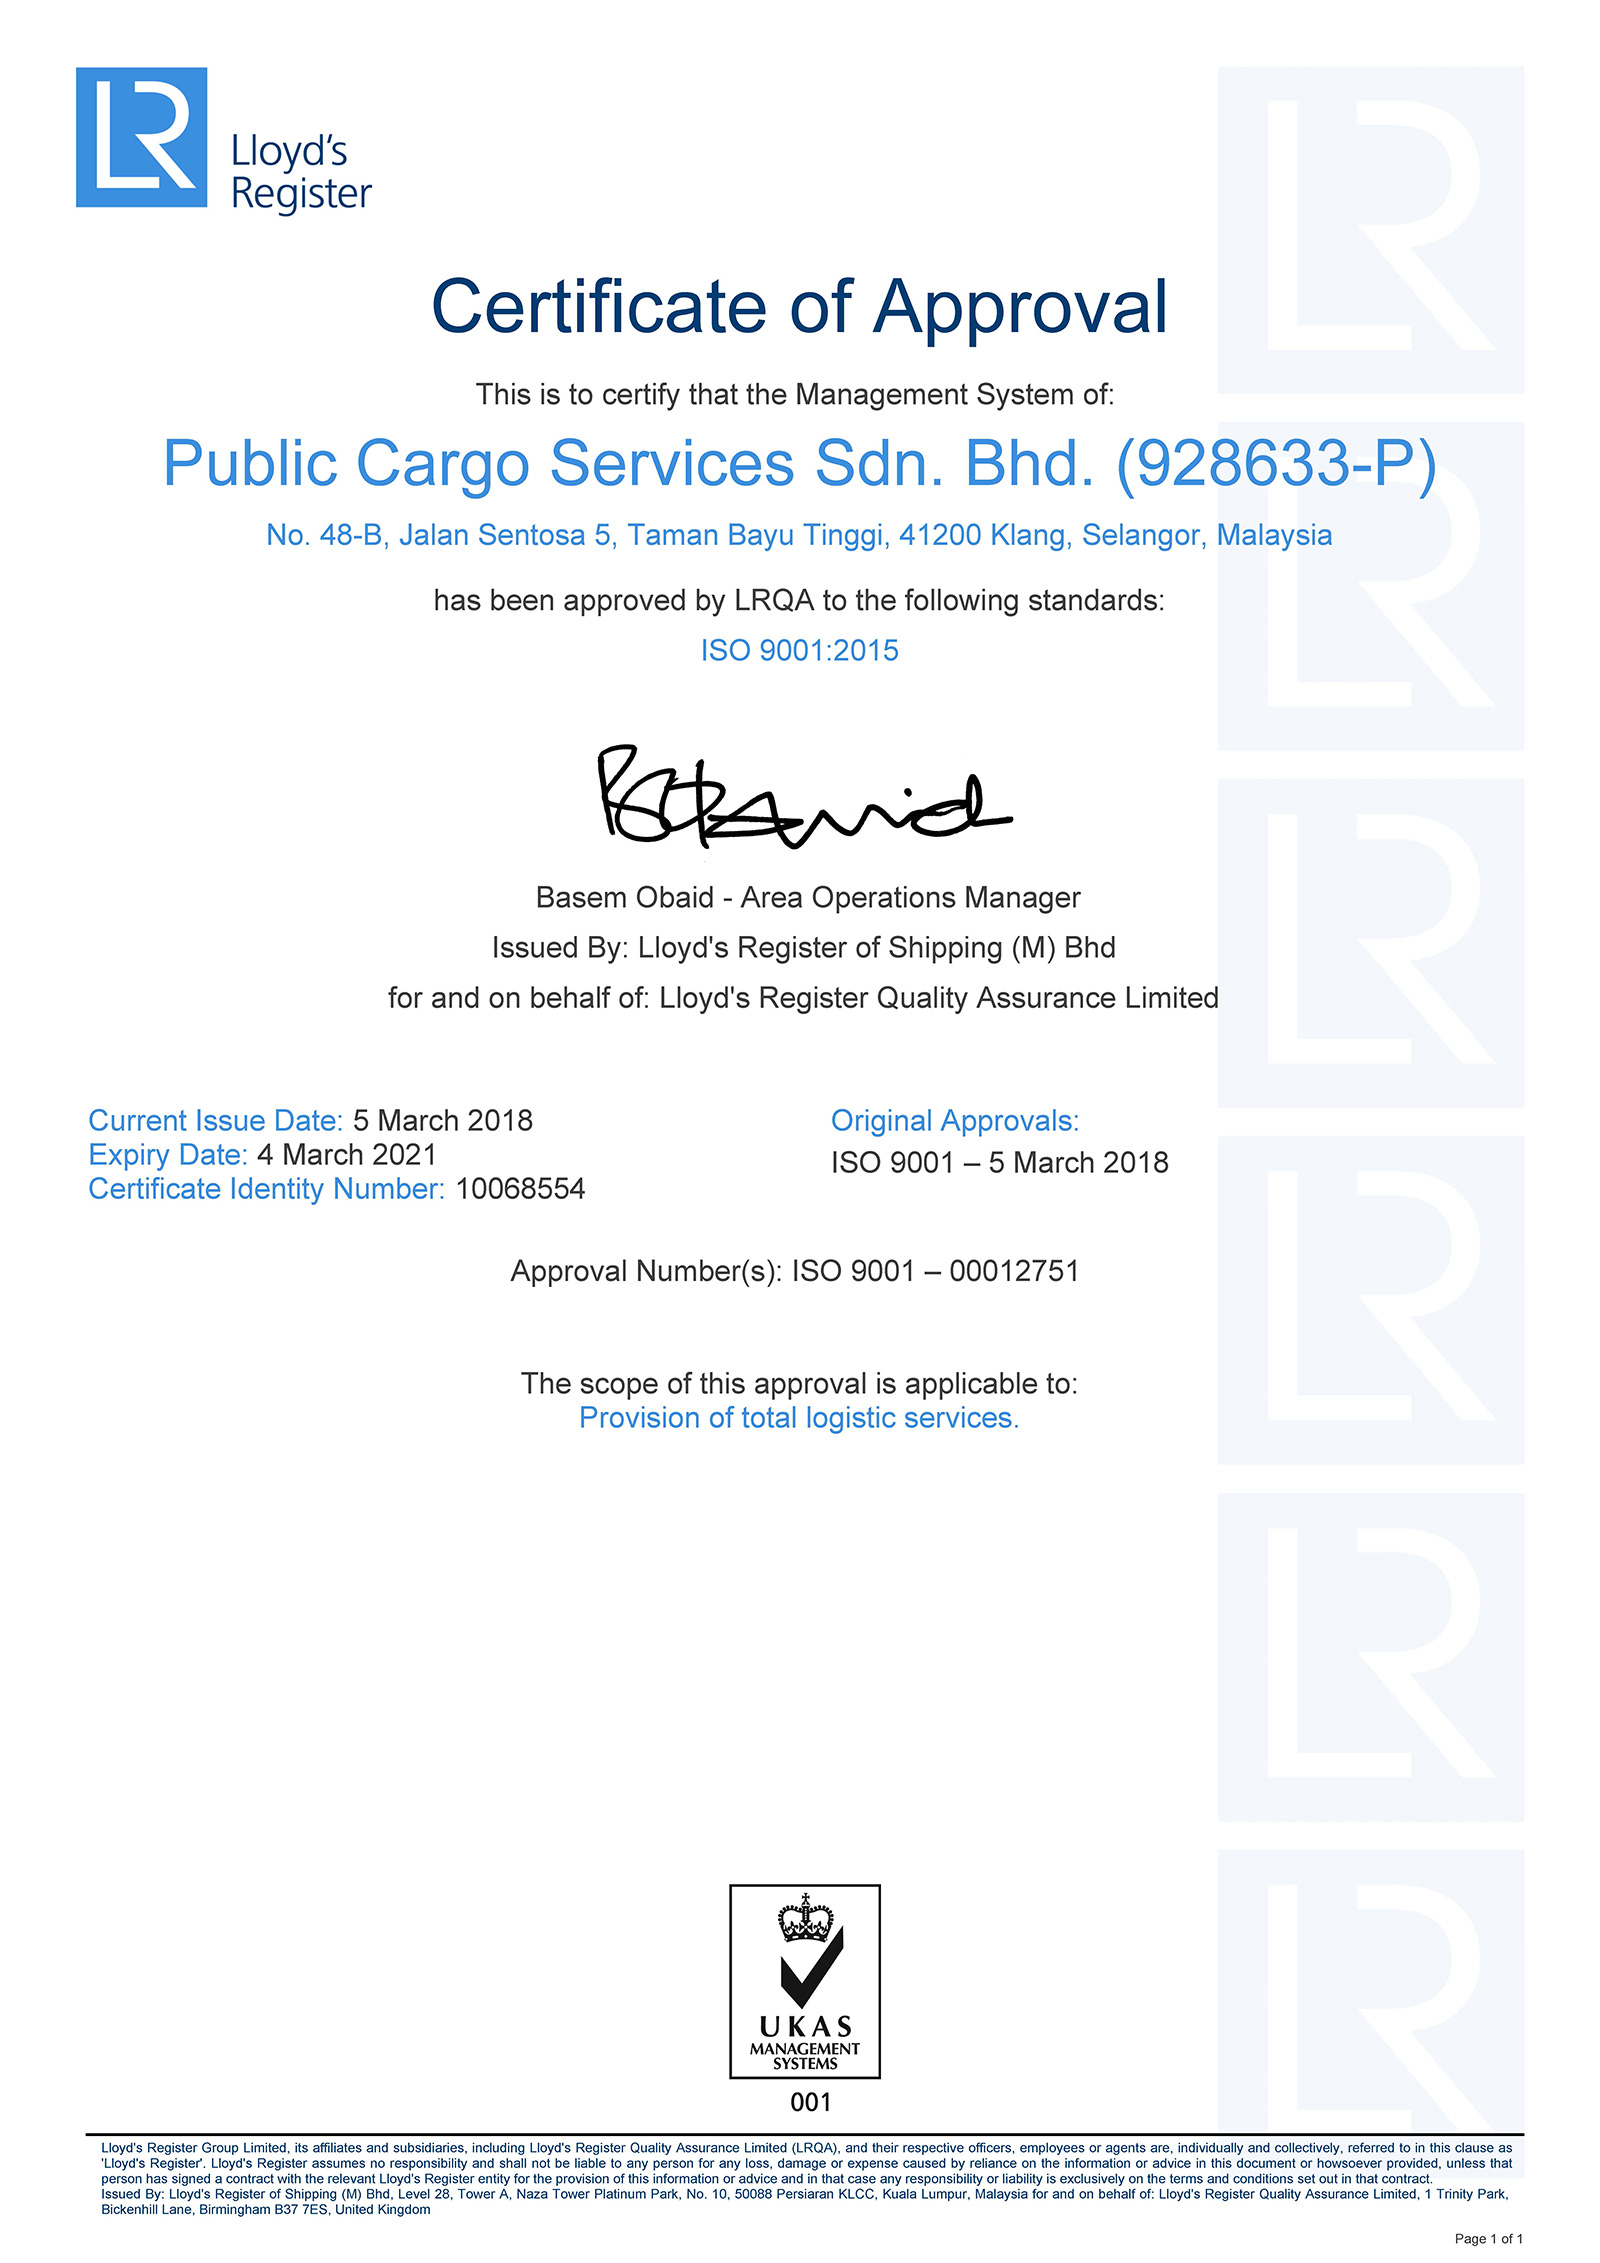 Public Cargo Services Sdn Bhd – Your Preferred Choice, For